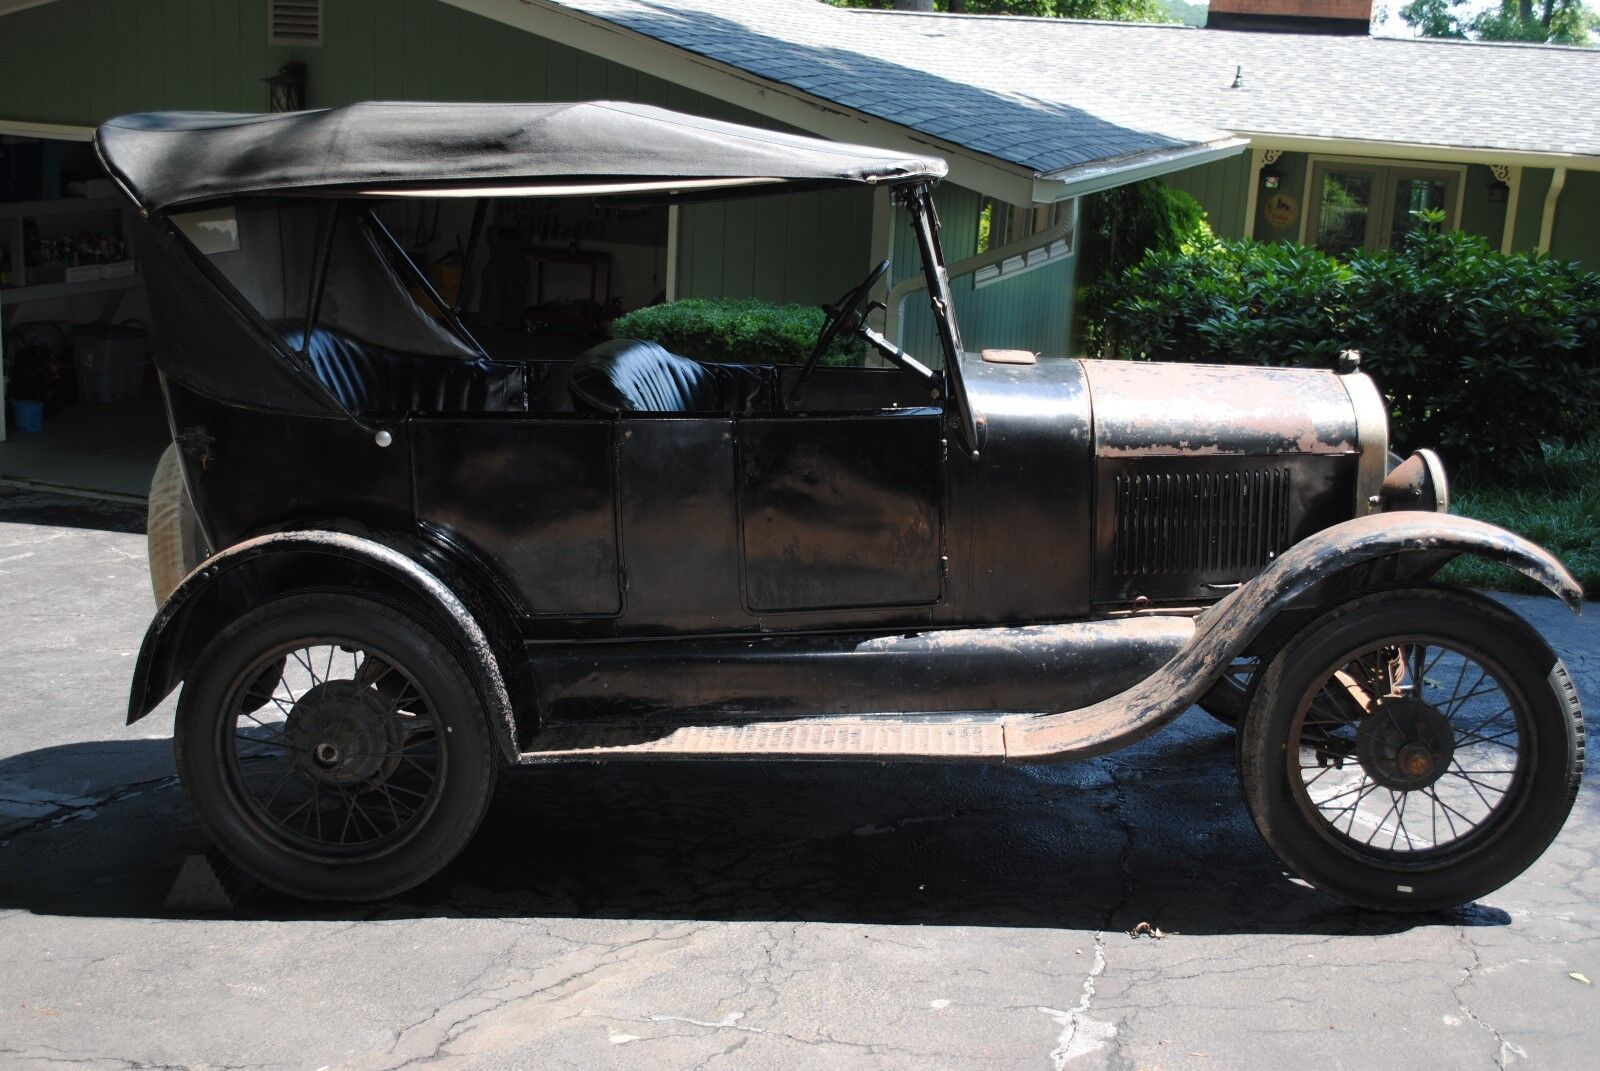 1926 Ford Model T -- 1926 Ford Model T Touring Car